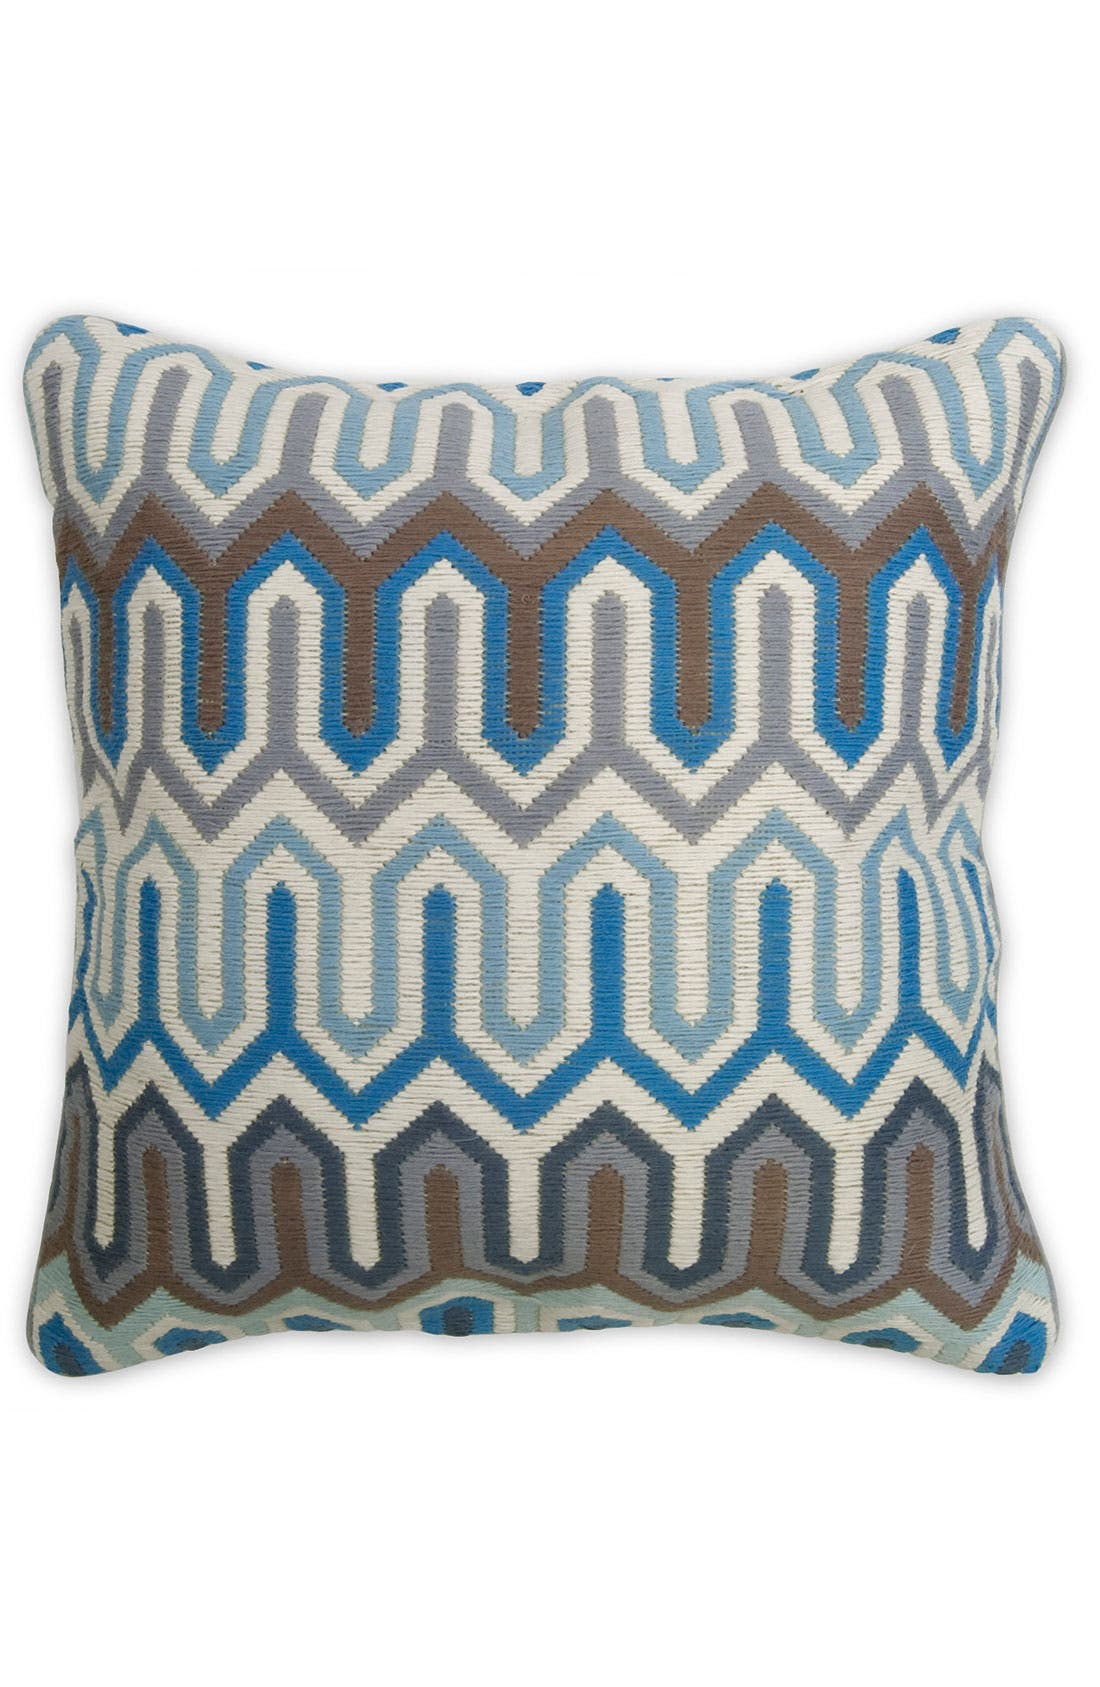 Alternate Image 1 Selected - Jonathan Adler 'Bargello Chevron' Pillow